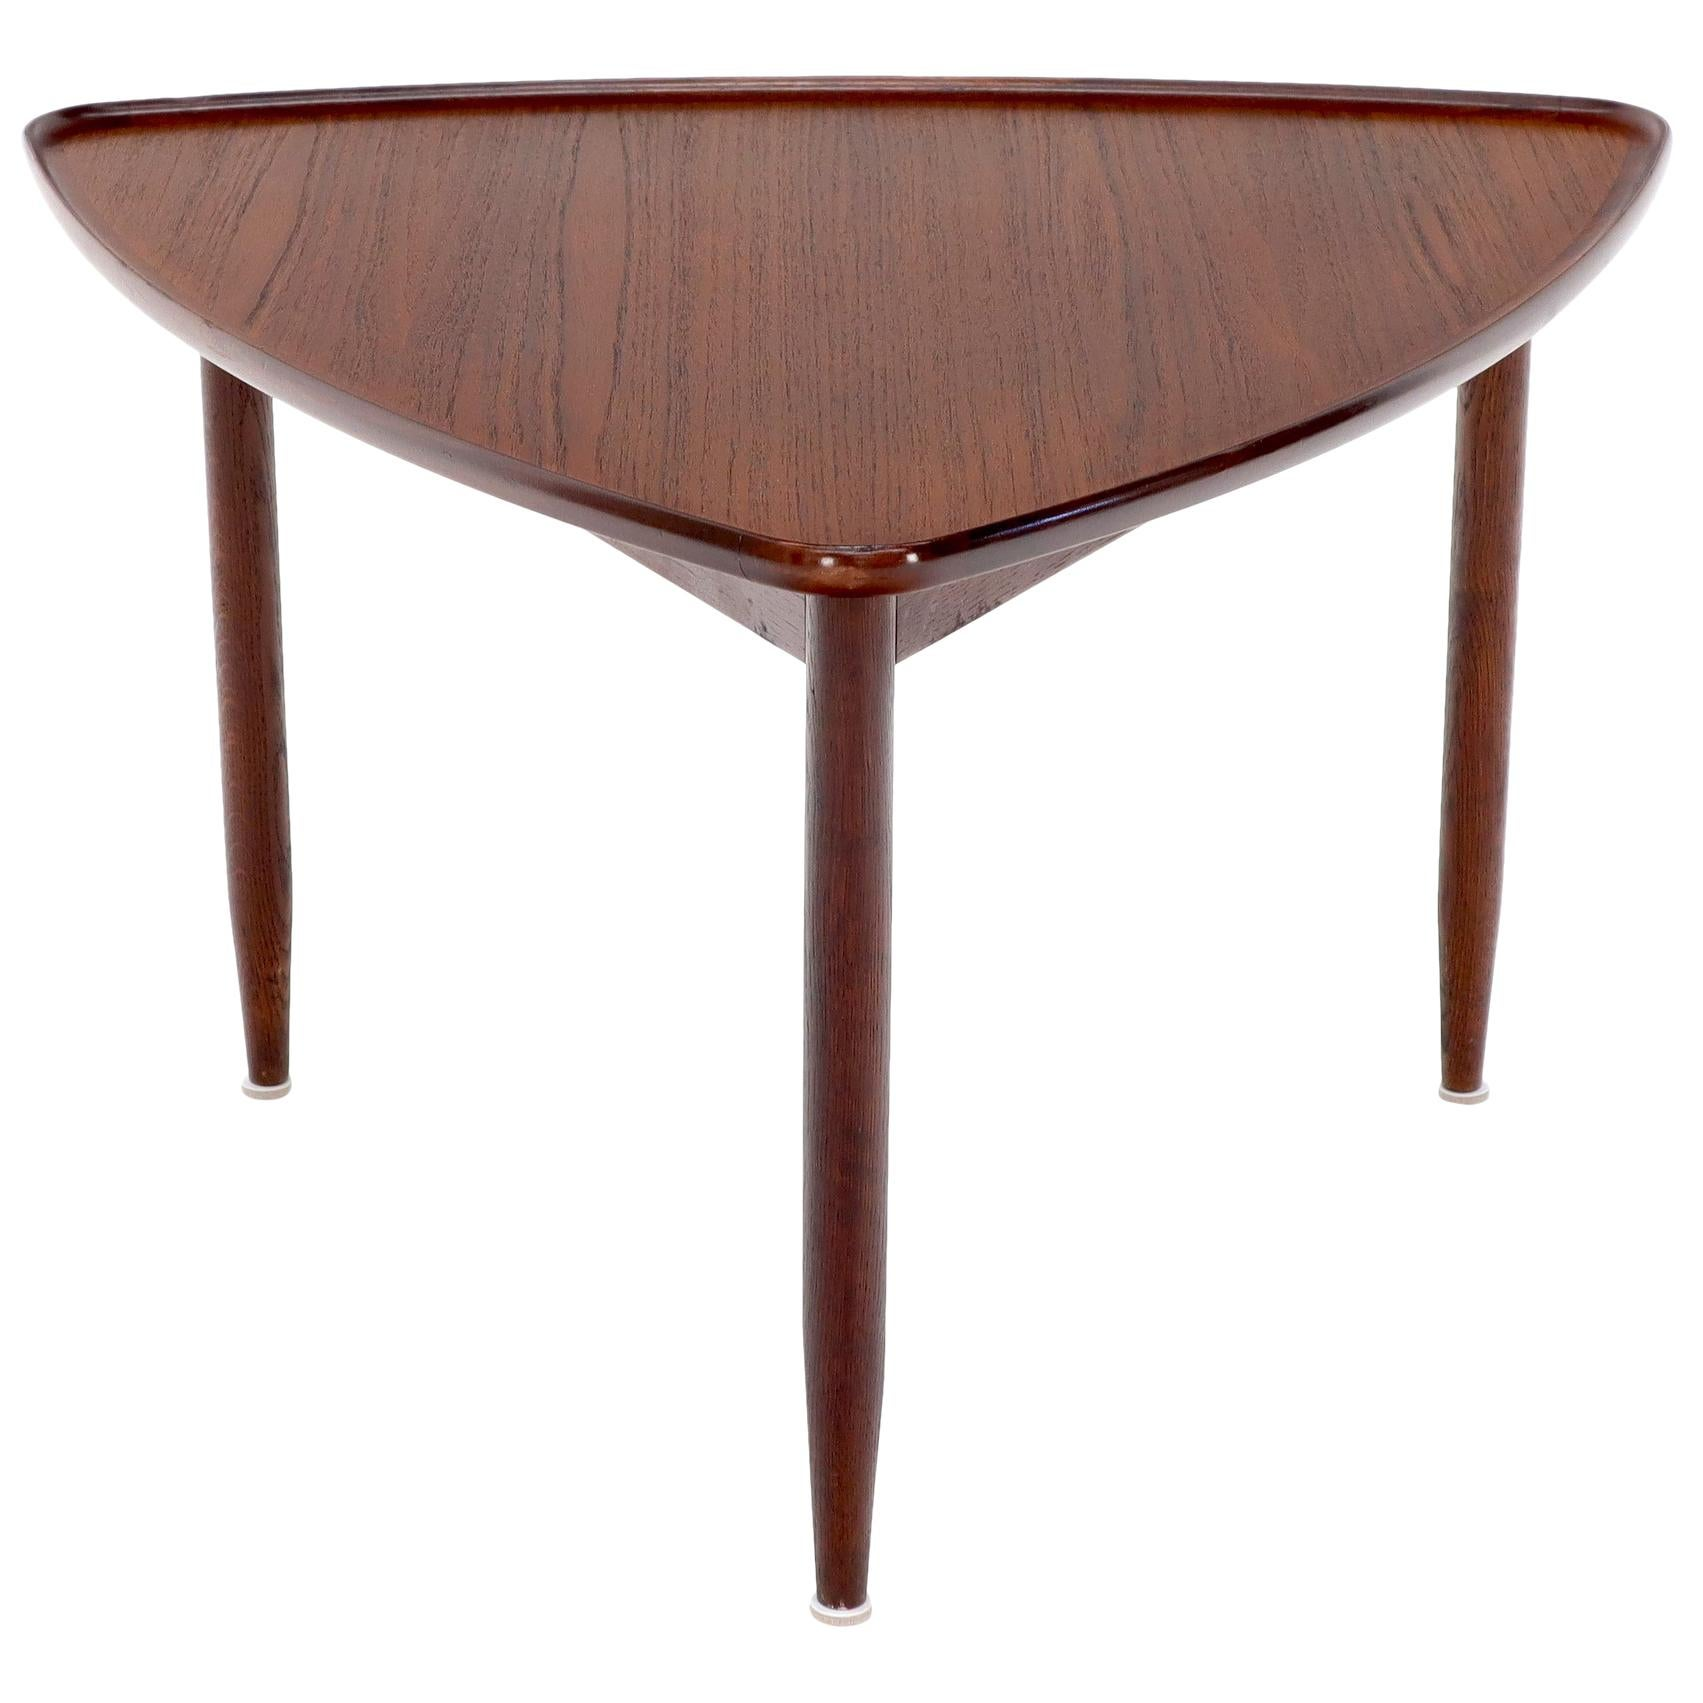 Rounded triangle Shape Teak Danish Modern Side Occasional Table Stand